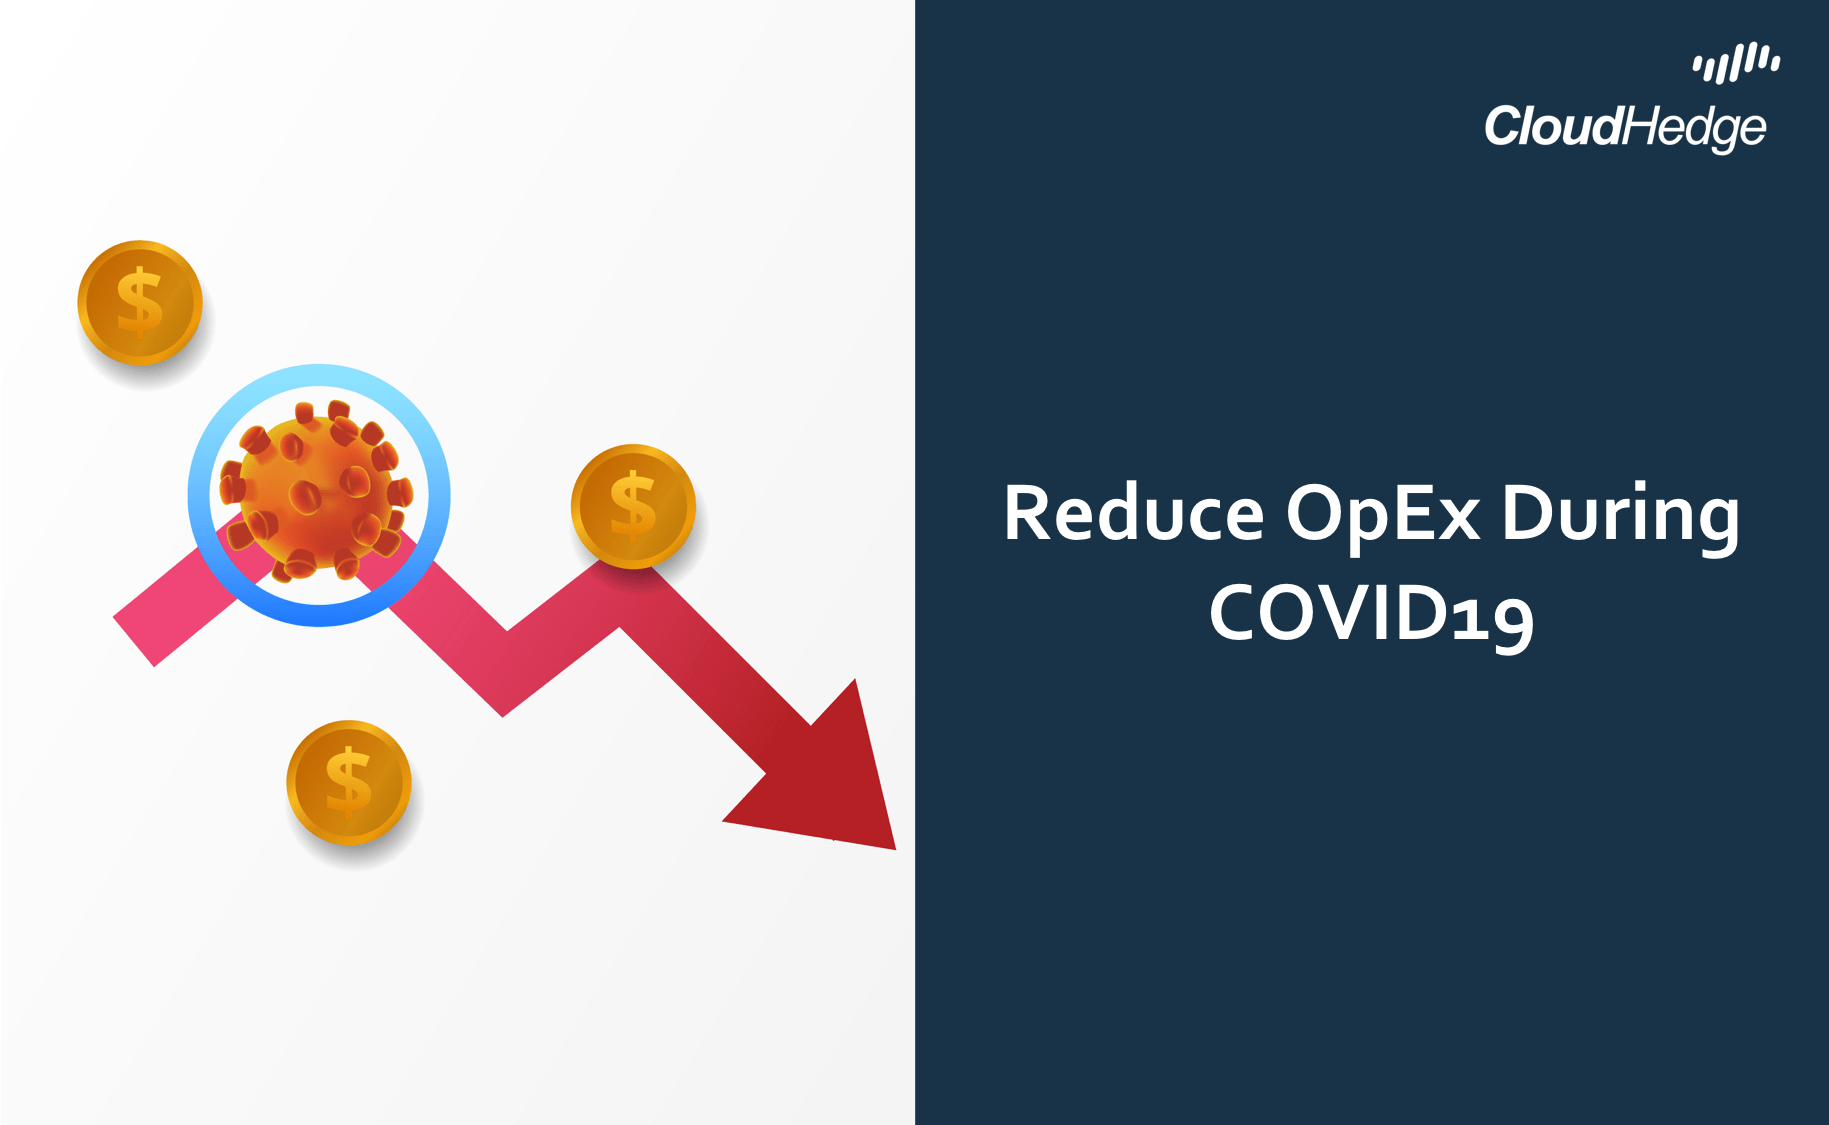 Reduce OpEx during Covid19